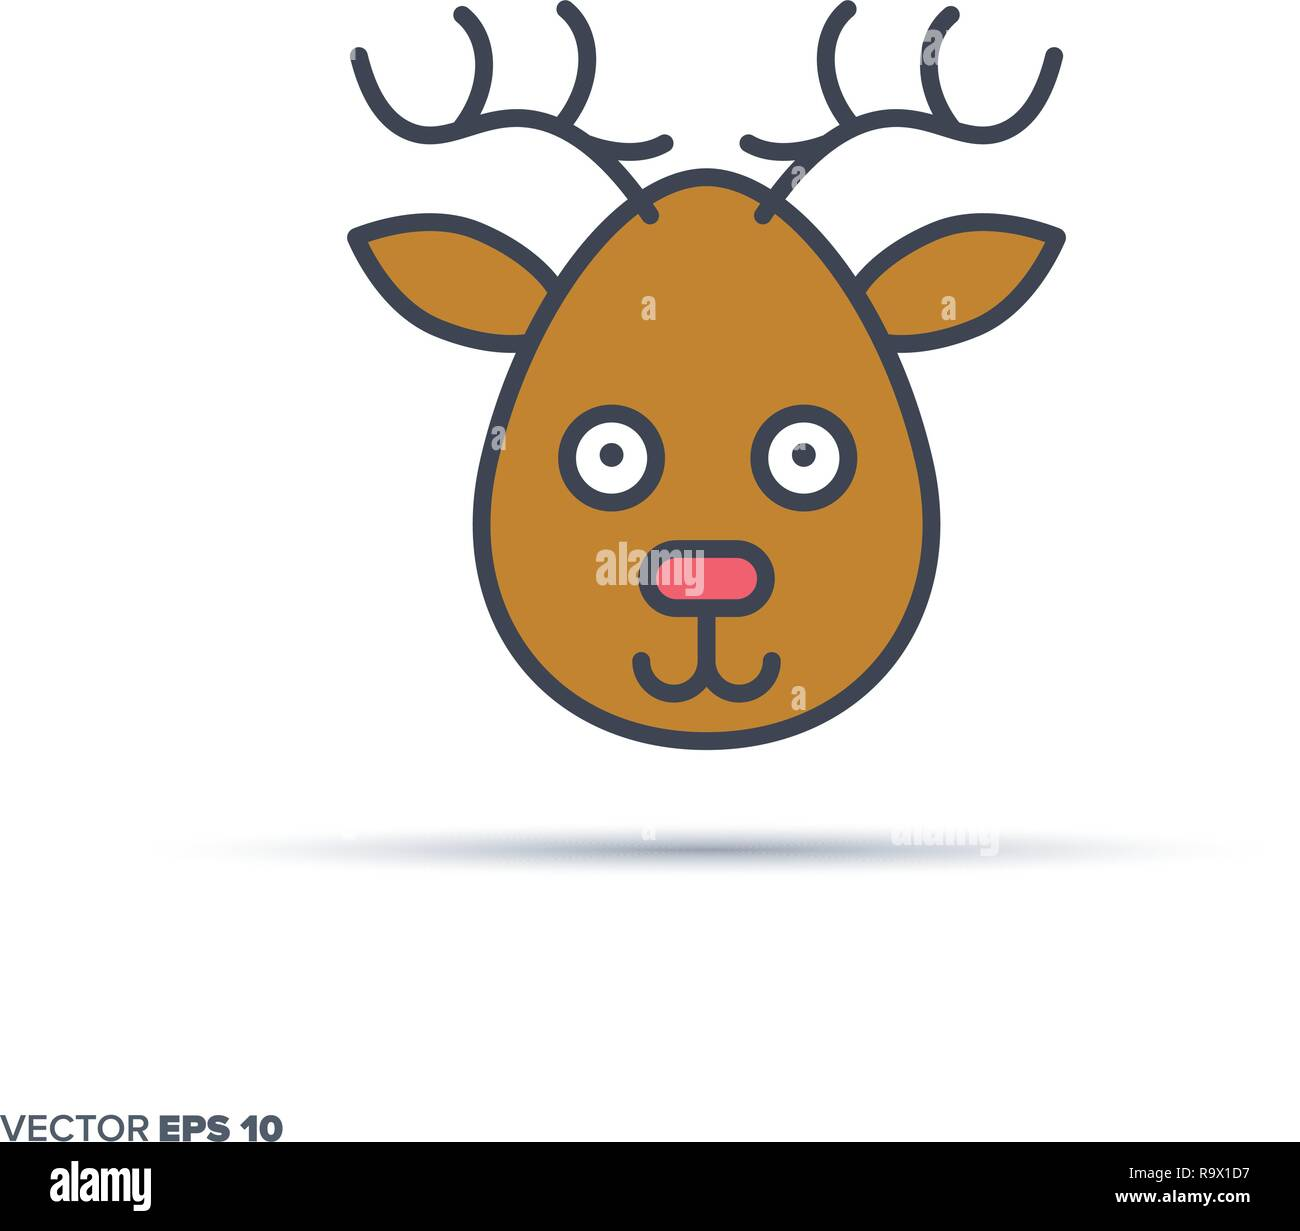 Cute deer face outline vector icon with color fill. Funny animal illustration. - Stock Vector